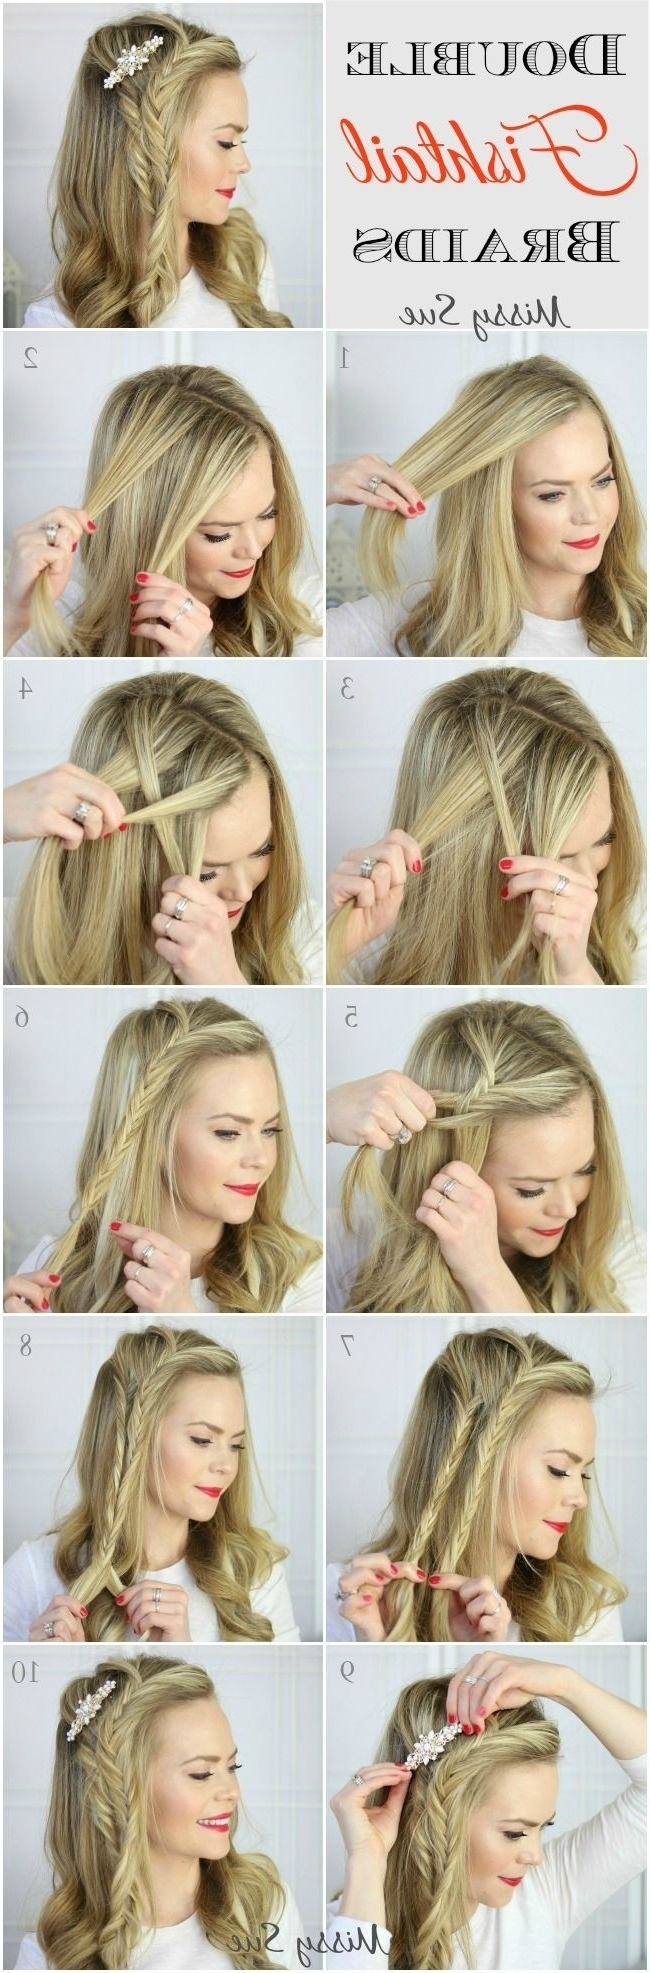 12 Amazing French Braid Hairstyles Tutorials – Pretty Designs In Newest Loose Side French Braid Hairstyles (View 8 of 15)